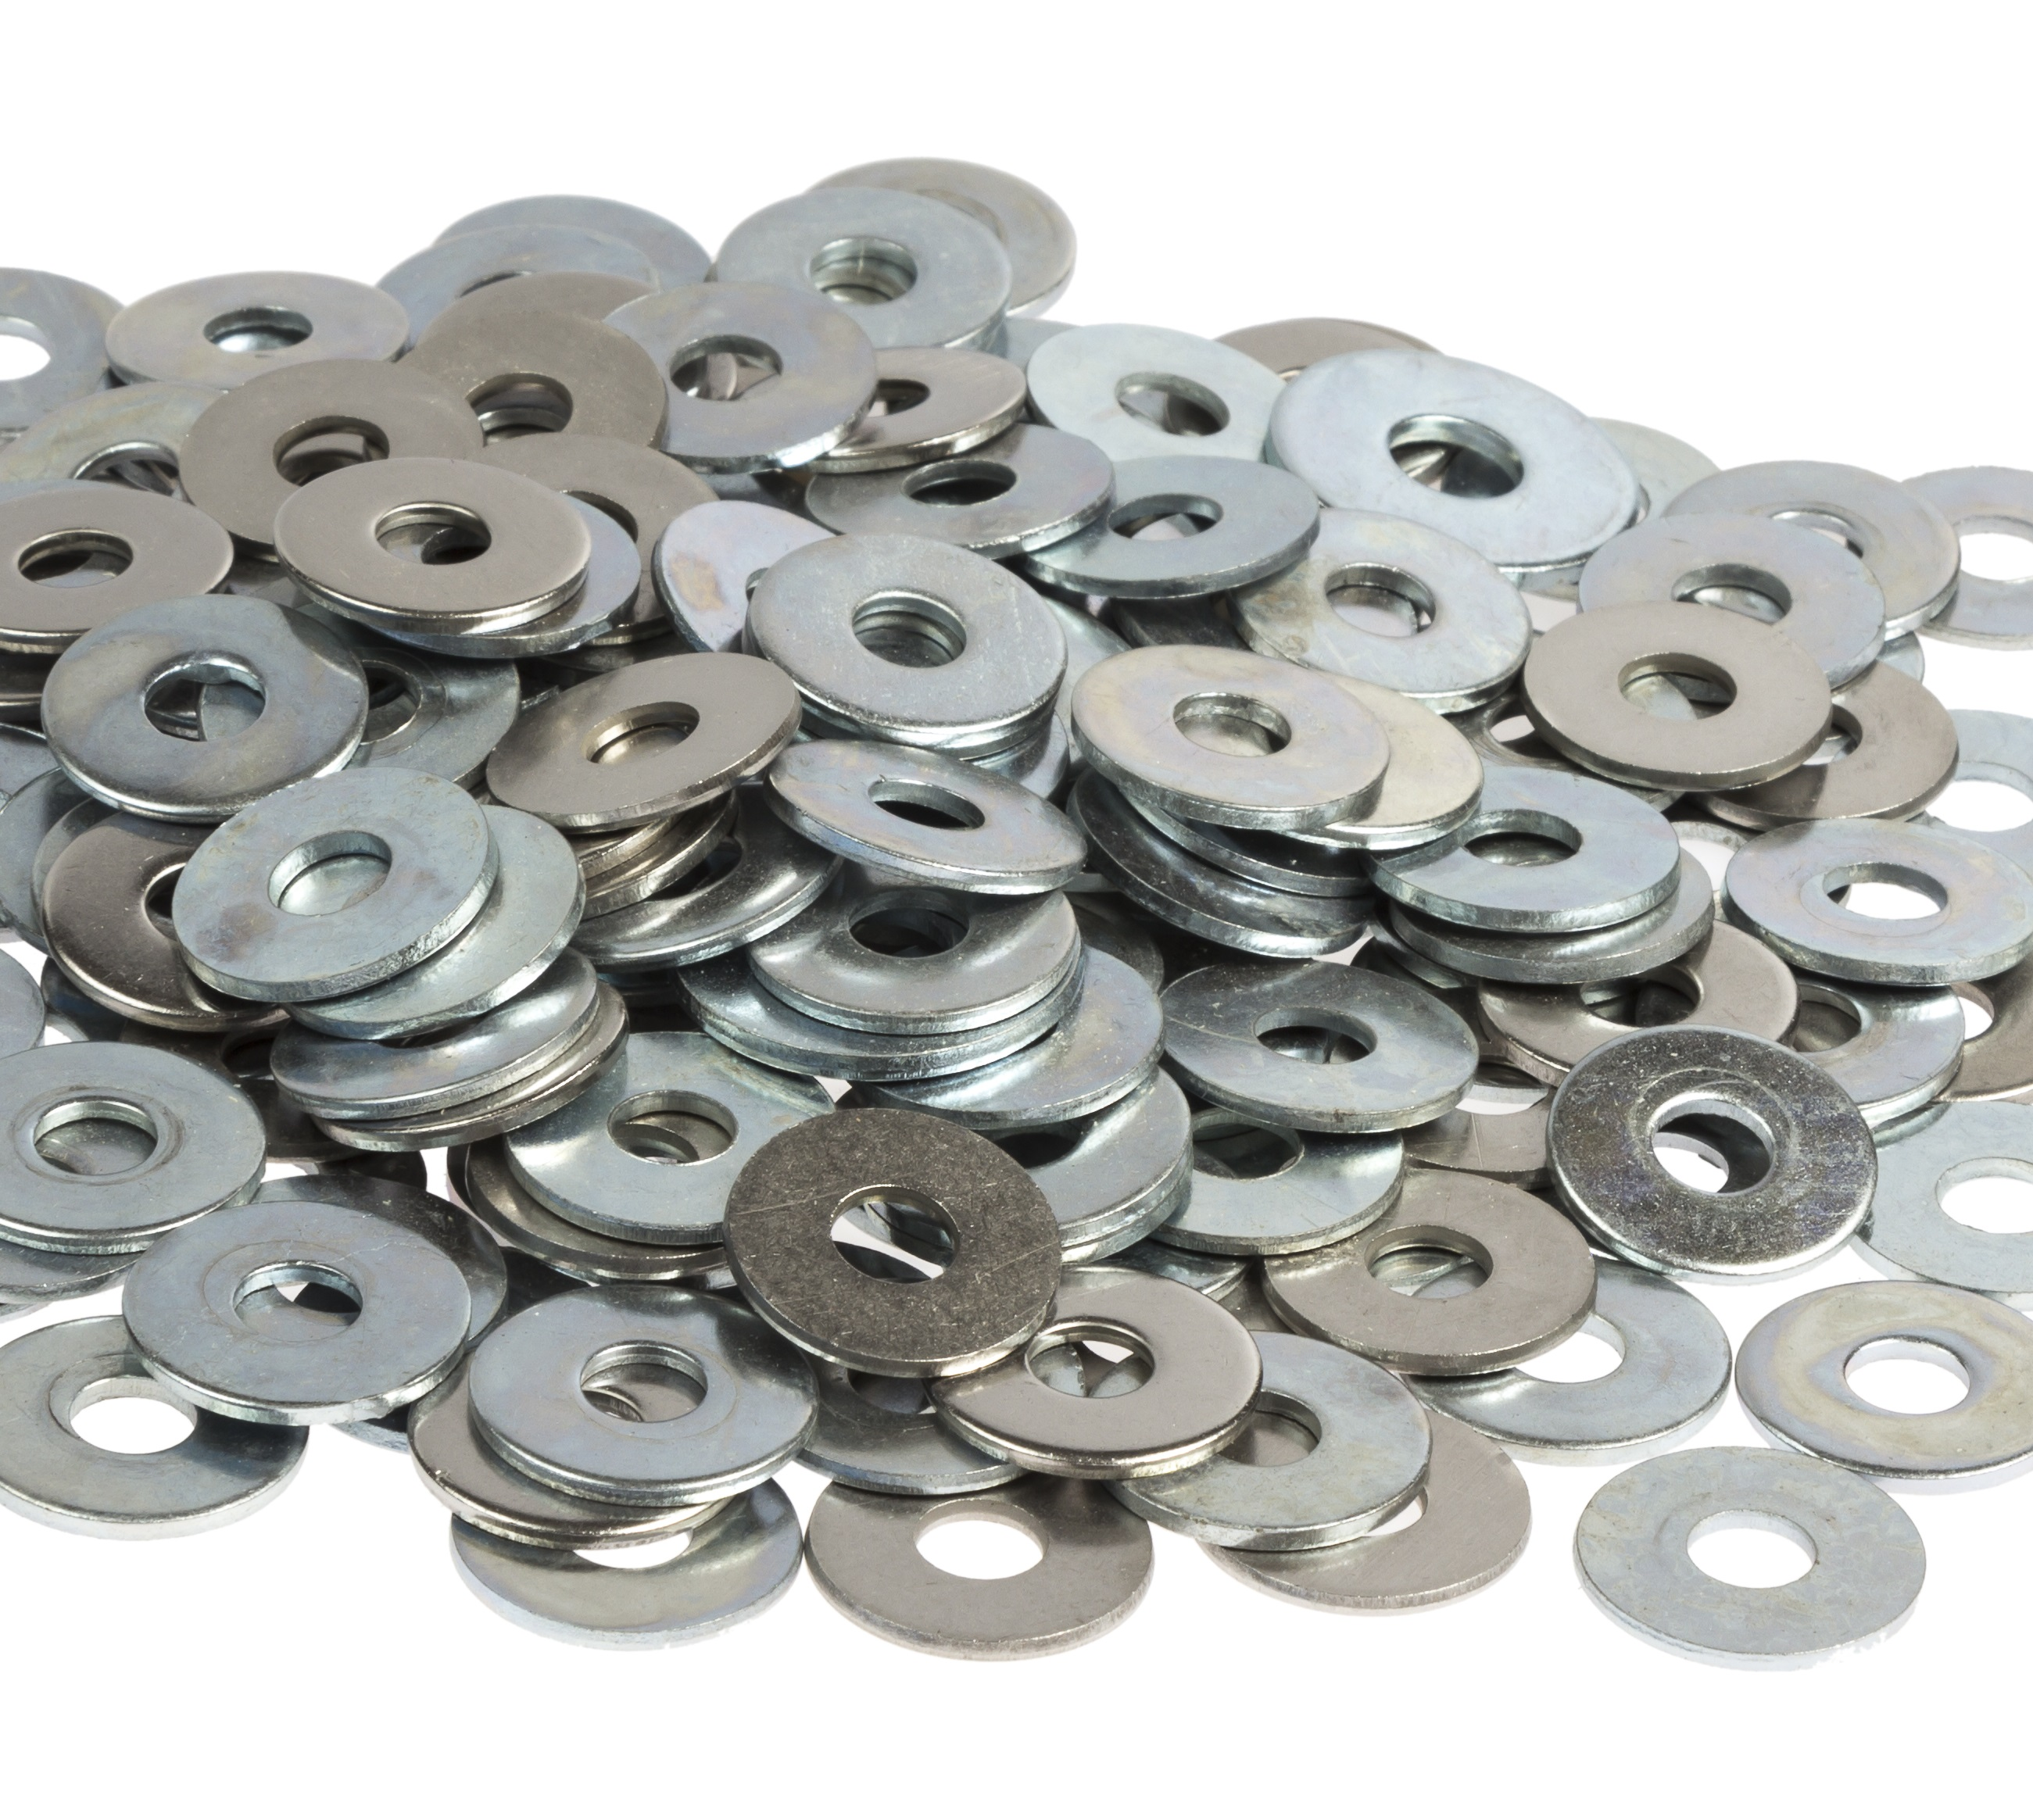 A stainless steel form b washers m